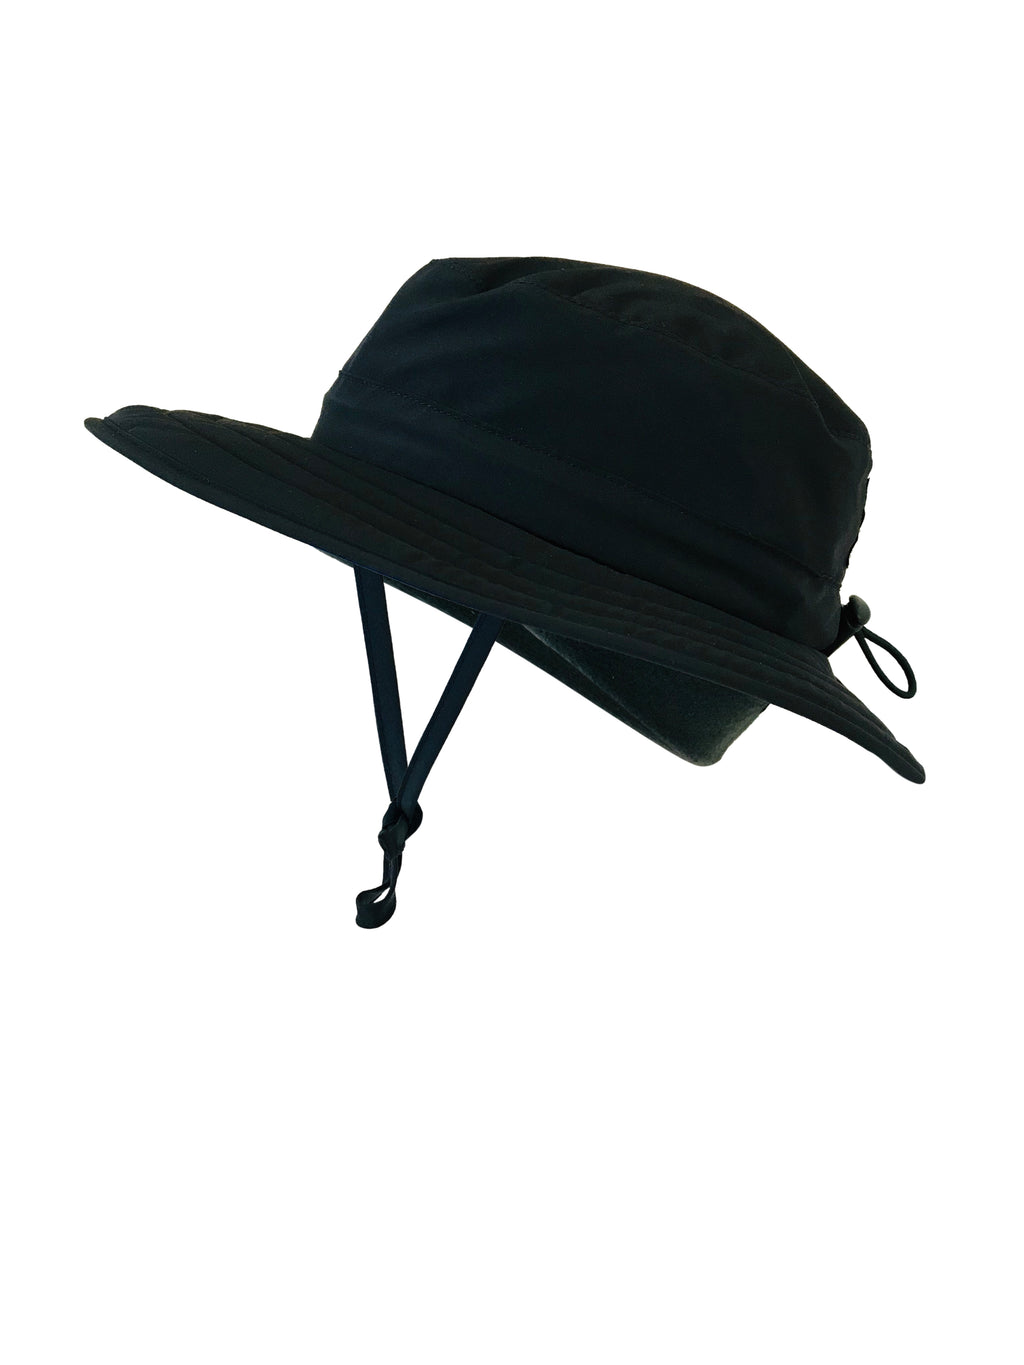 ZeuKnLu Black Sun Hat with removable liner side view